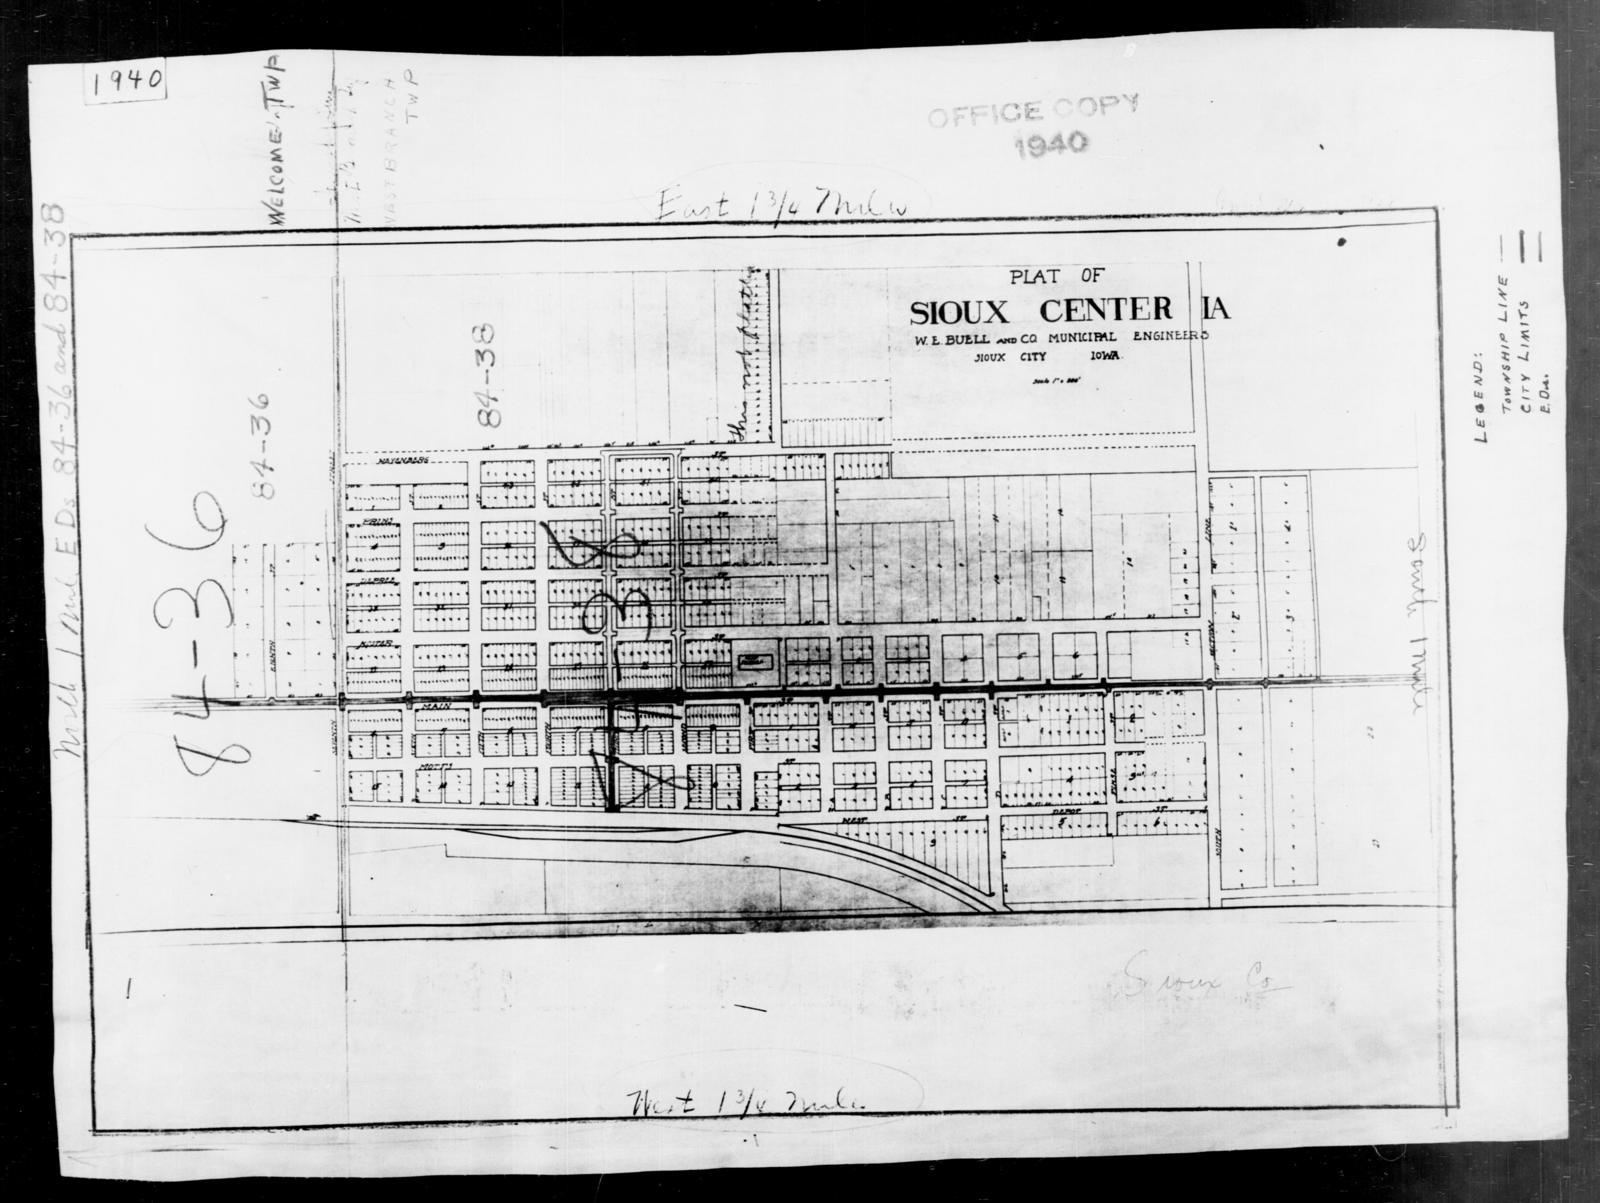 Sioux County Iowa Map.1940 Census Enumeration District Maps Iowa Sioux County Sioux